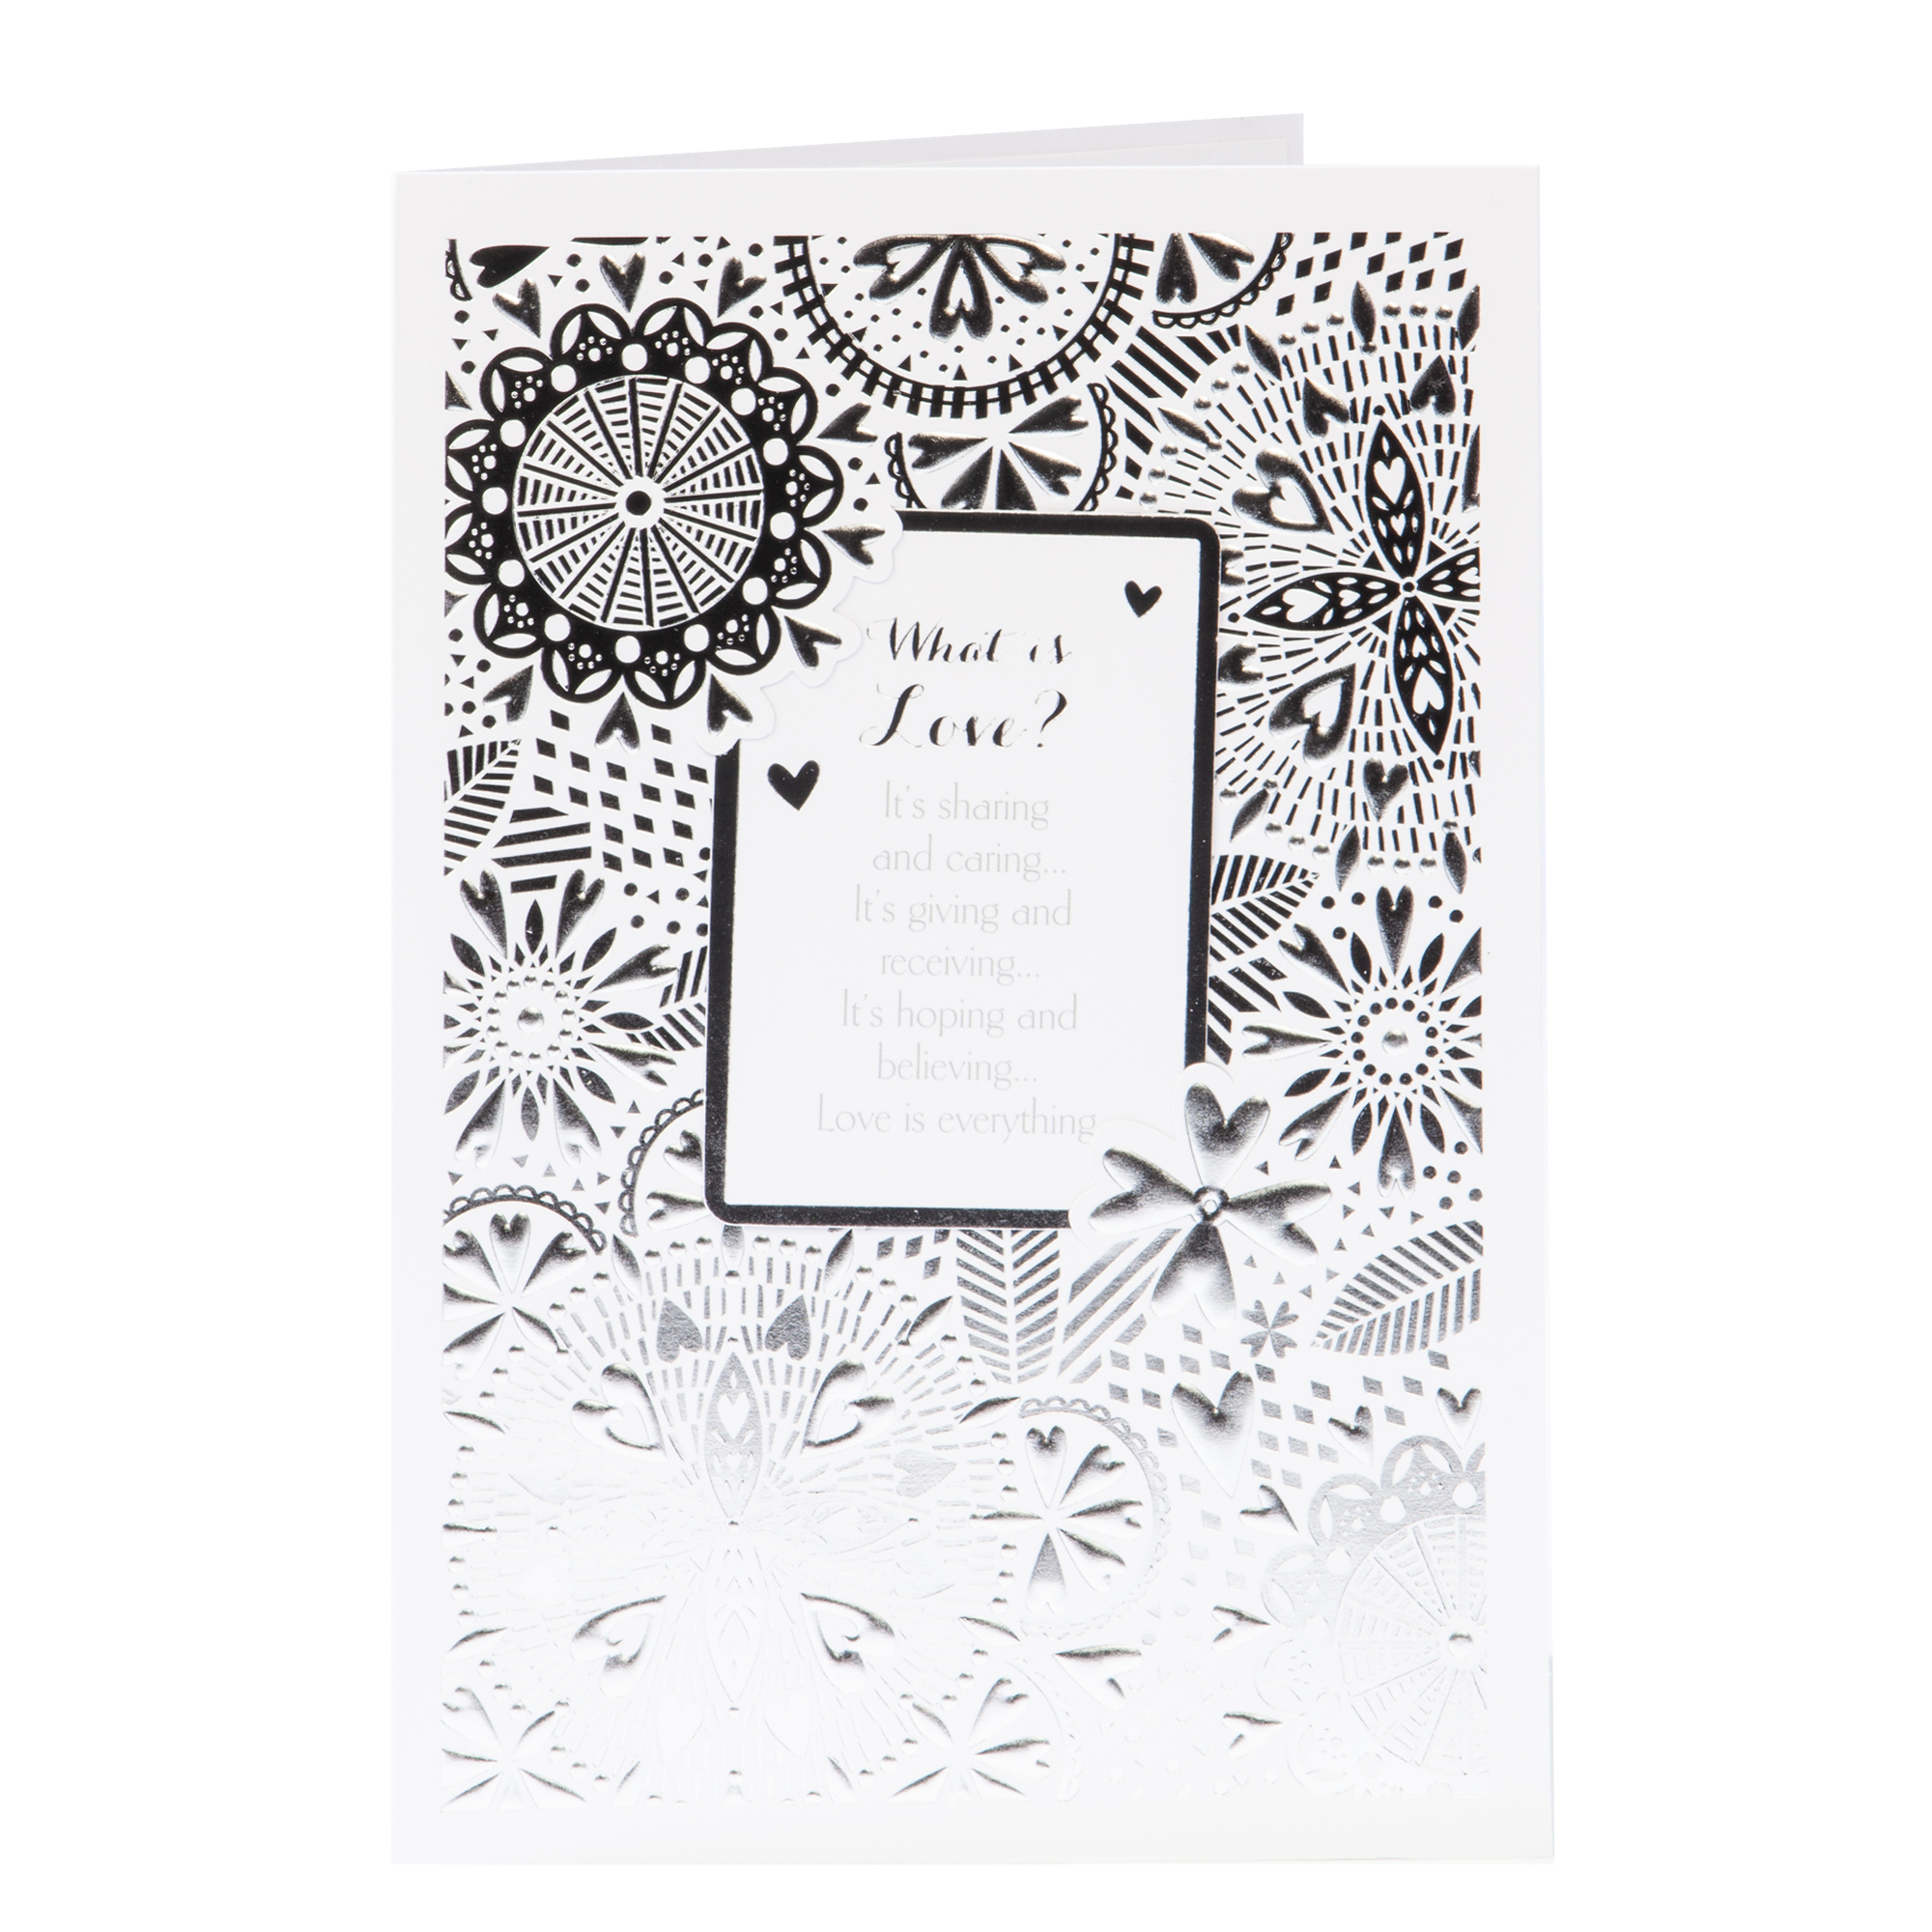 buy anniversary card  love is sharing  caring for gbp 0